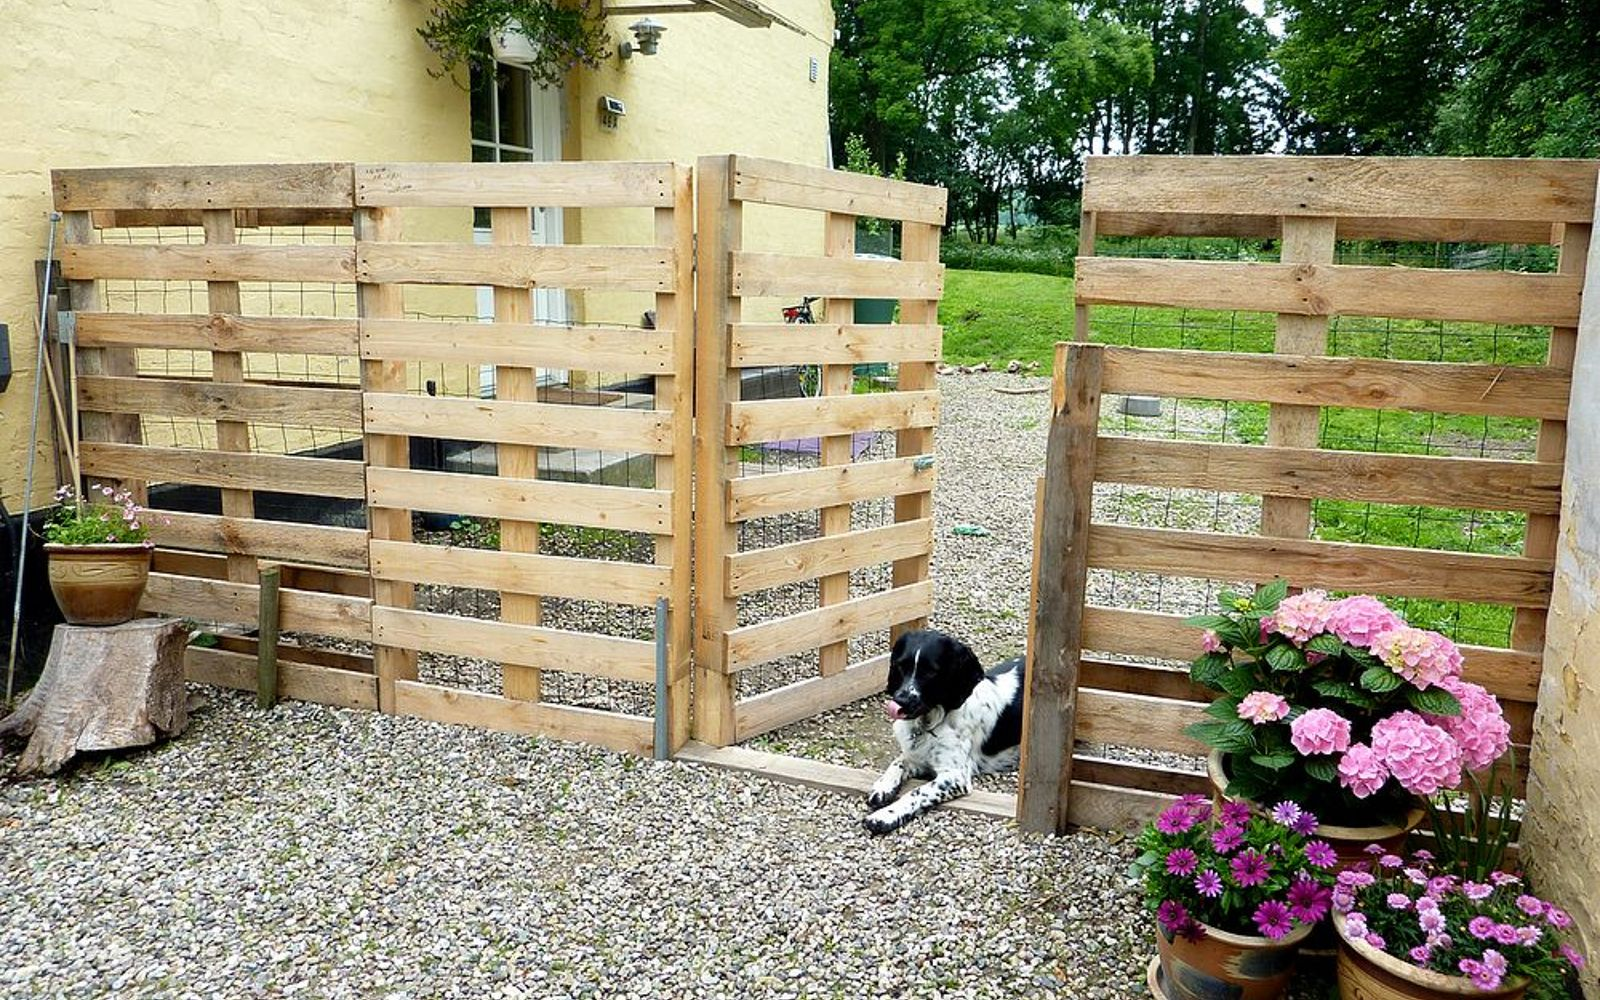 s 15 privacy fences that will turn your yard into a secluded oasis, curb appeal, fences, Line up a few pallets for a free option